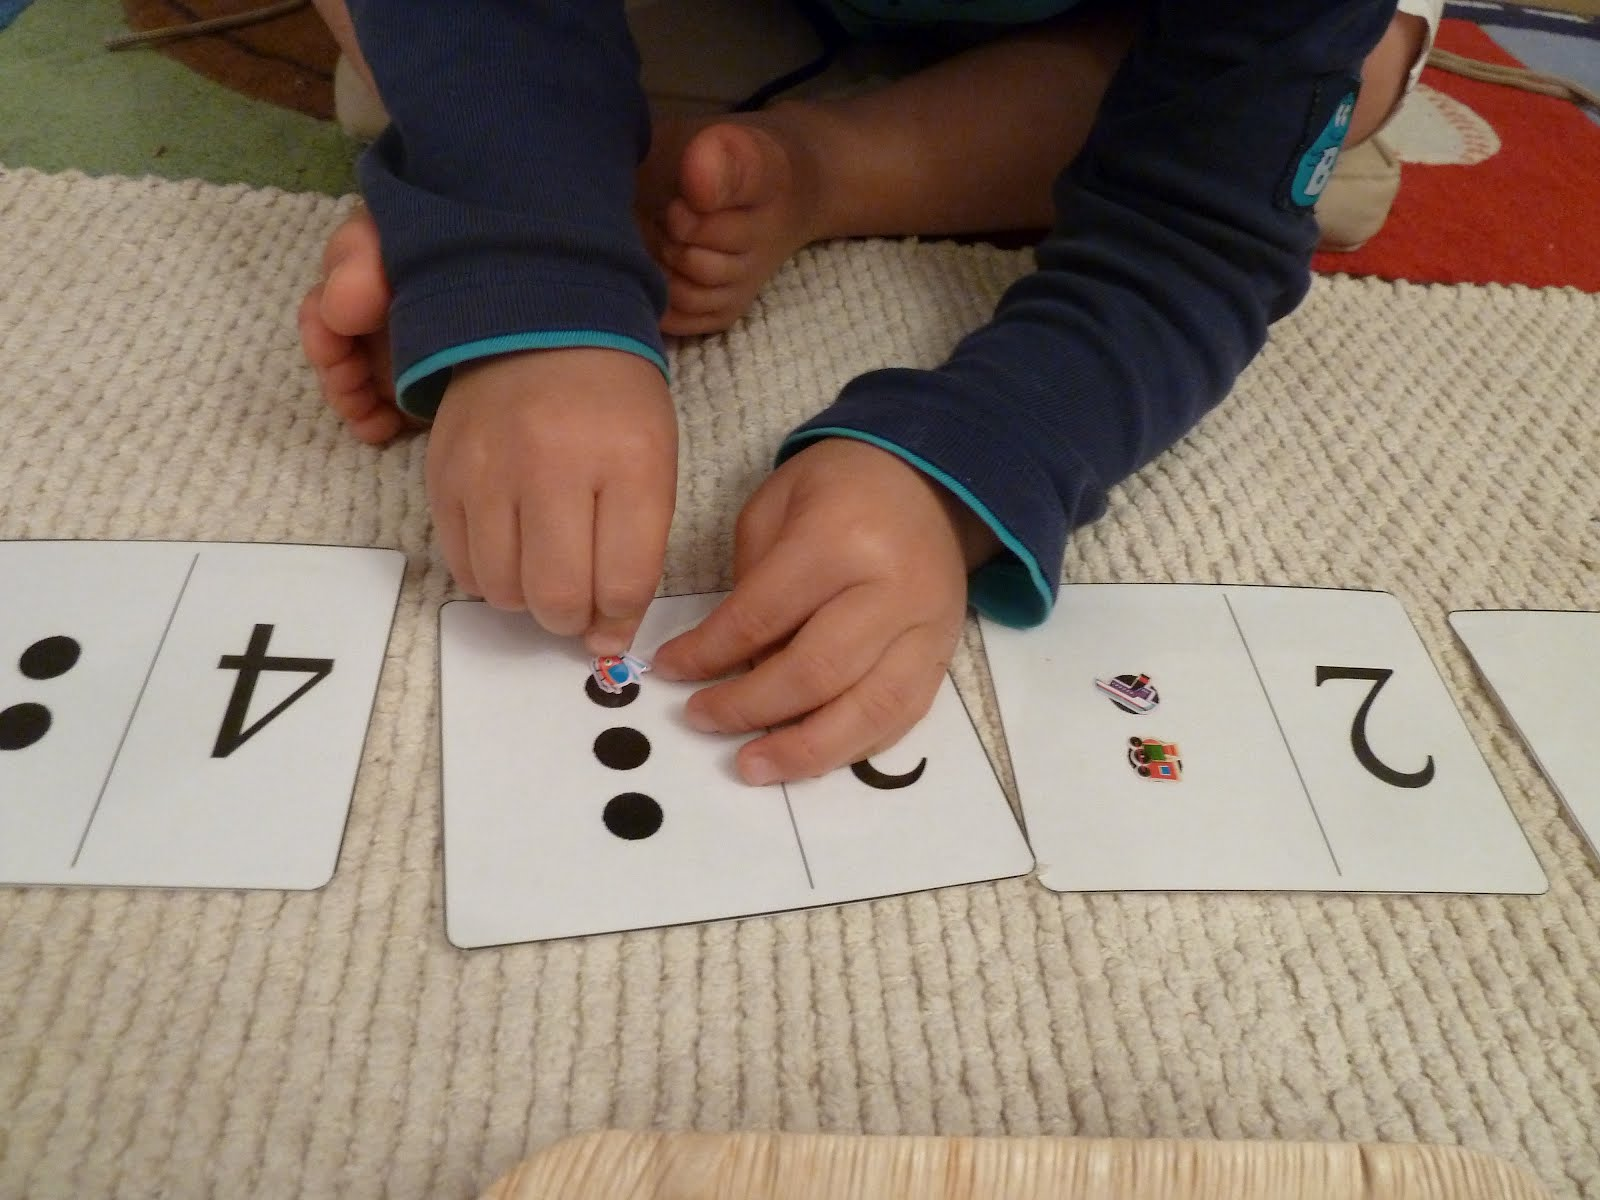 4 year old arts and crafts - Montessori Activity Counting And Numeral Recognition With Stickers Age From 3 5 Years Old